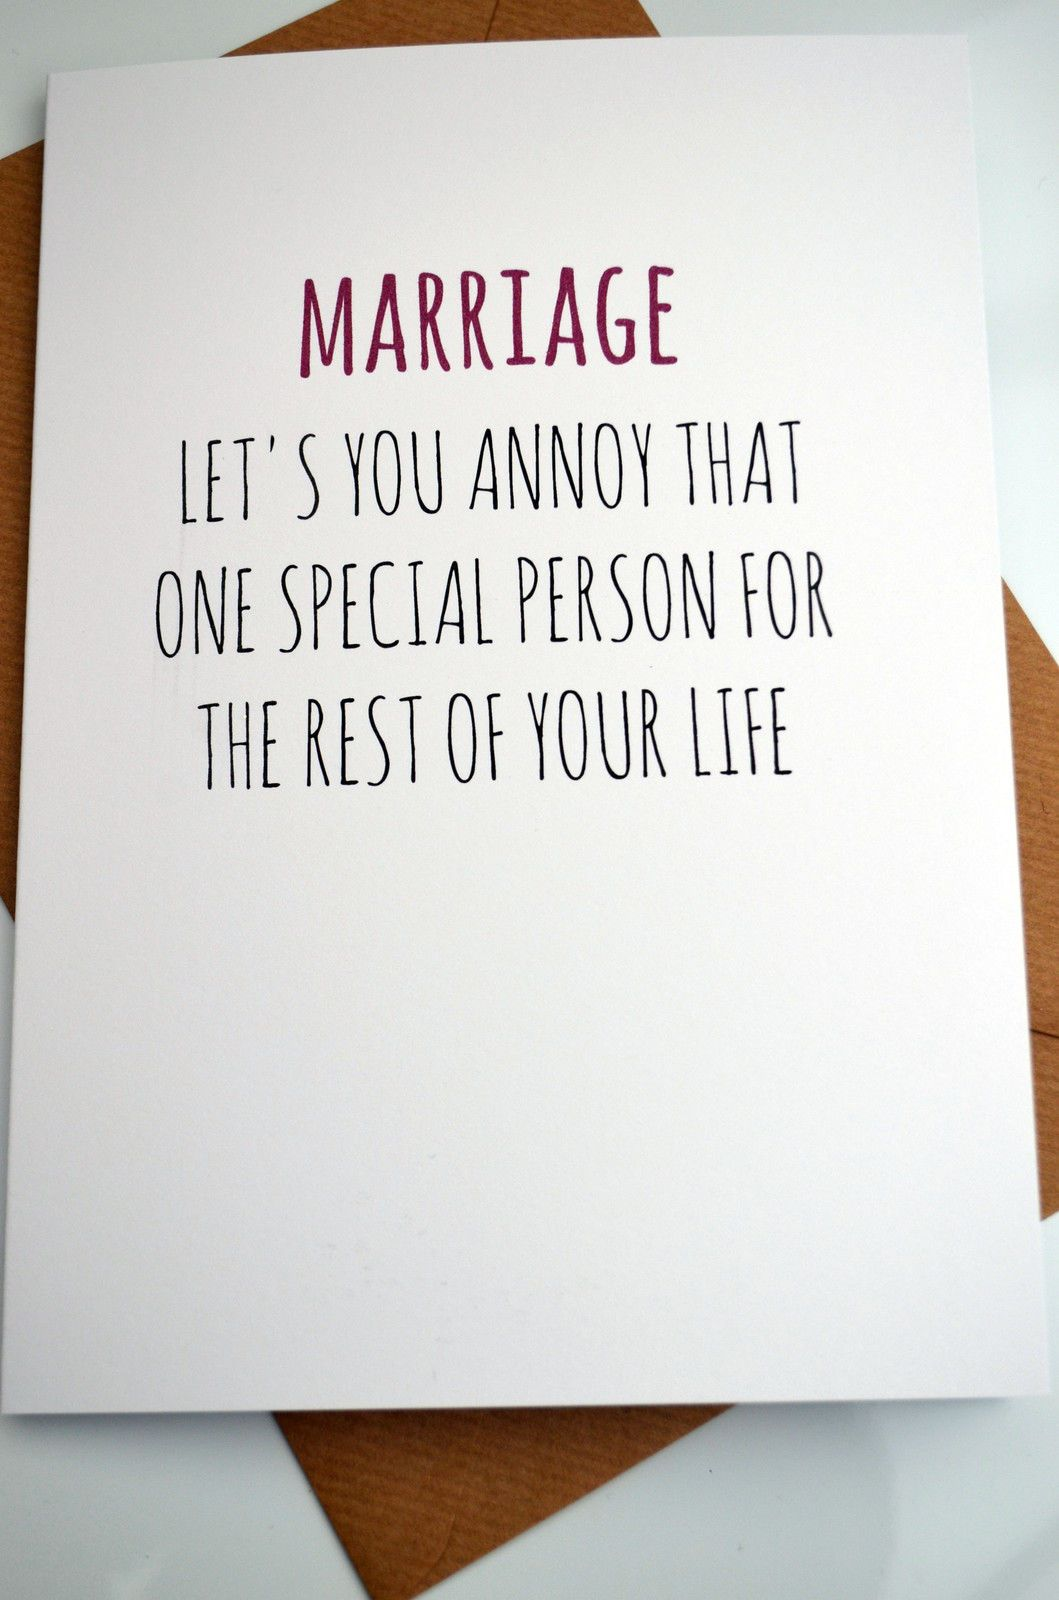 Funny Anniversary Card Greetings Card Cheeky Fun Humour Marriage Annoy Funny Anniversary Cards Anniversary Funny Anniversary Cards